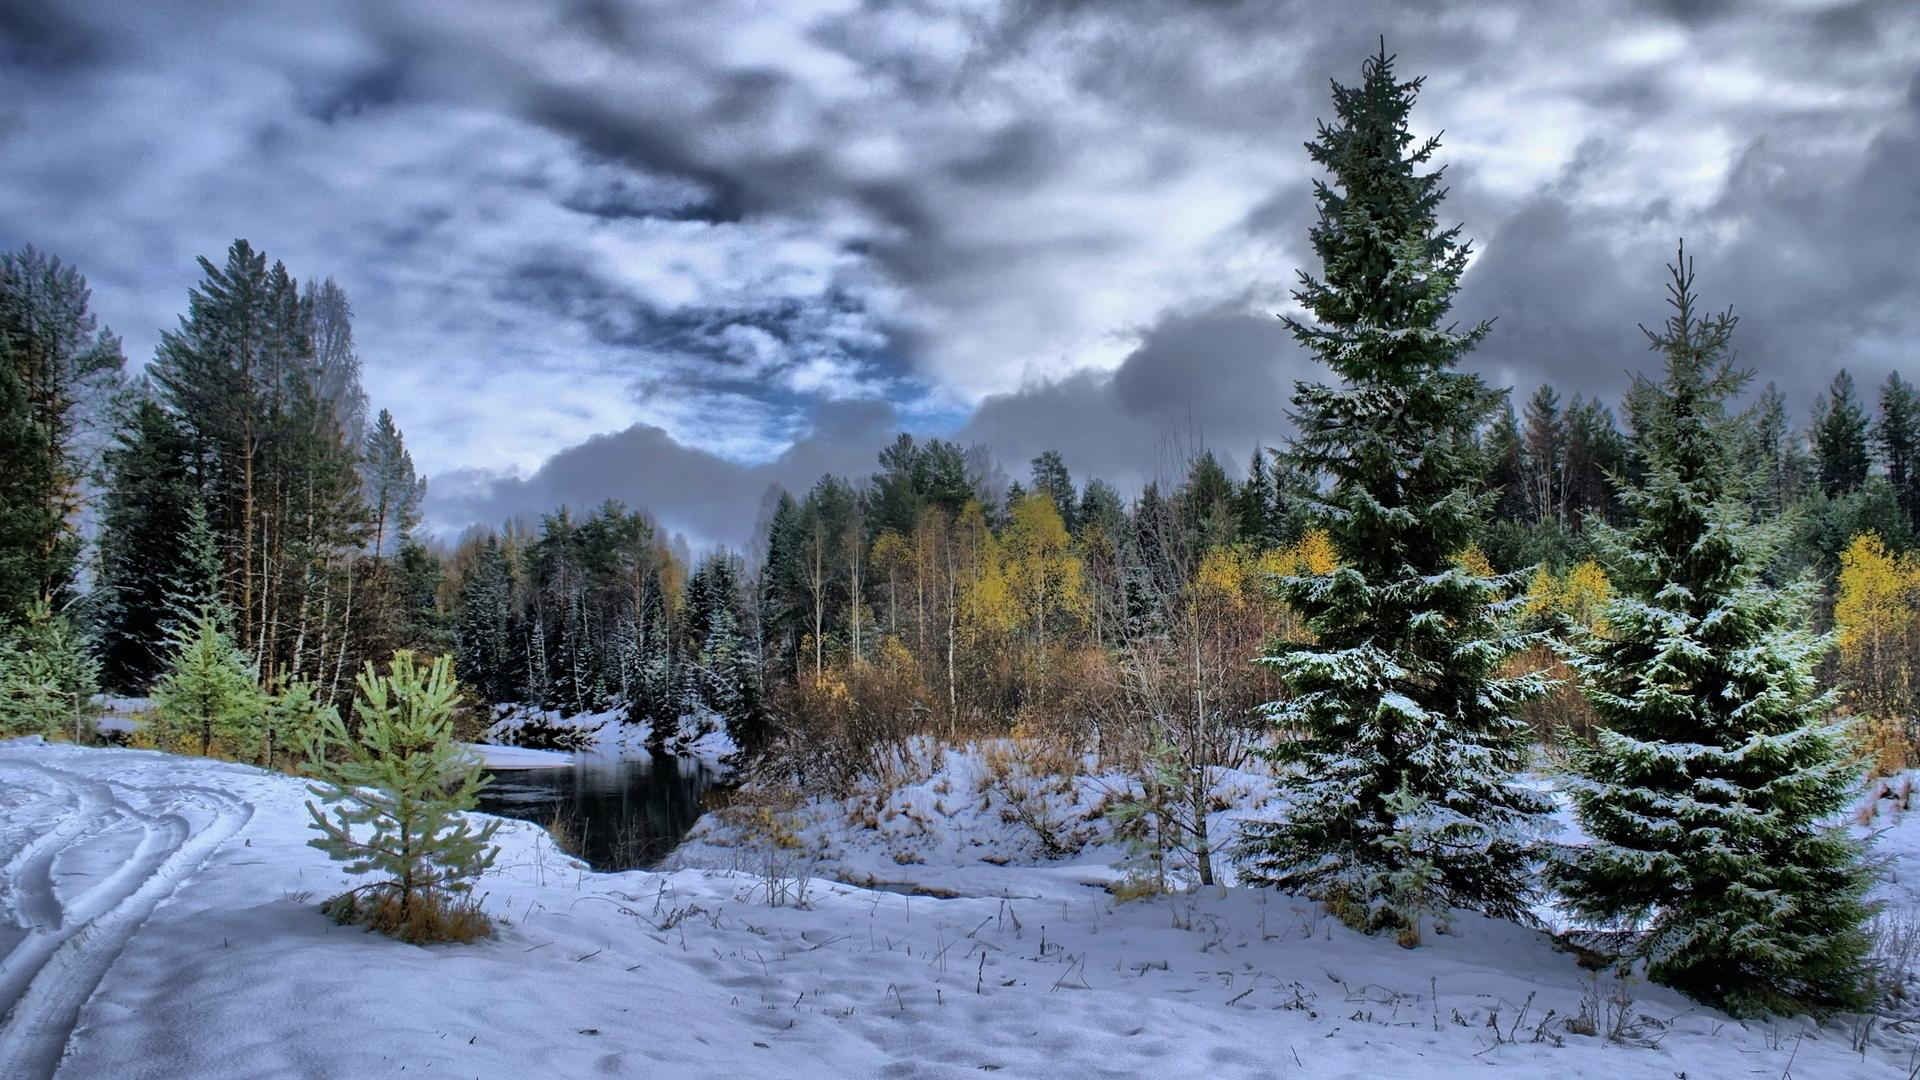 Winter nature scenes wallpaper sf wallpaper 17 best images about winter scenery wallpaper on pinterest voltagebd Image collections